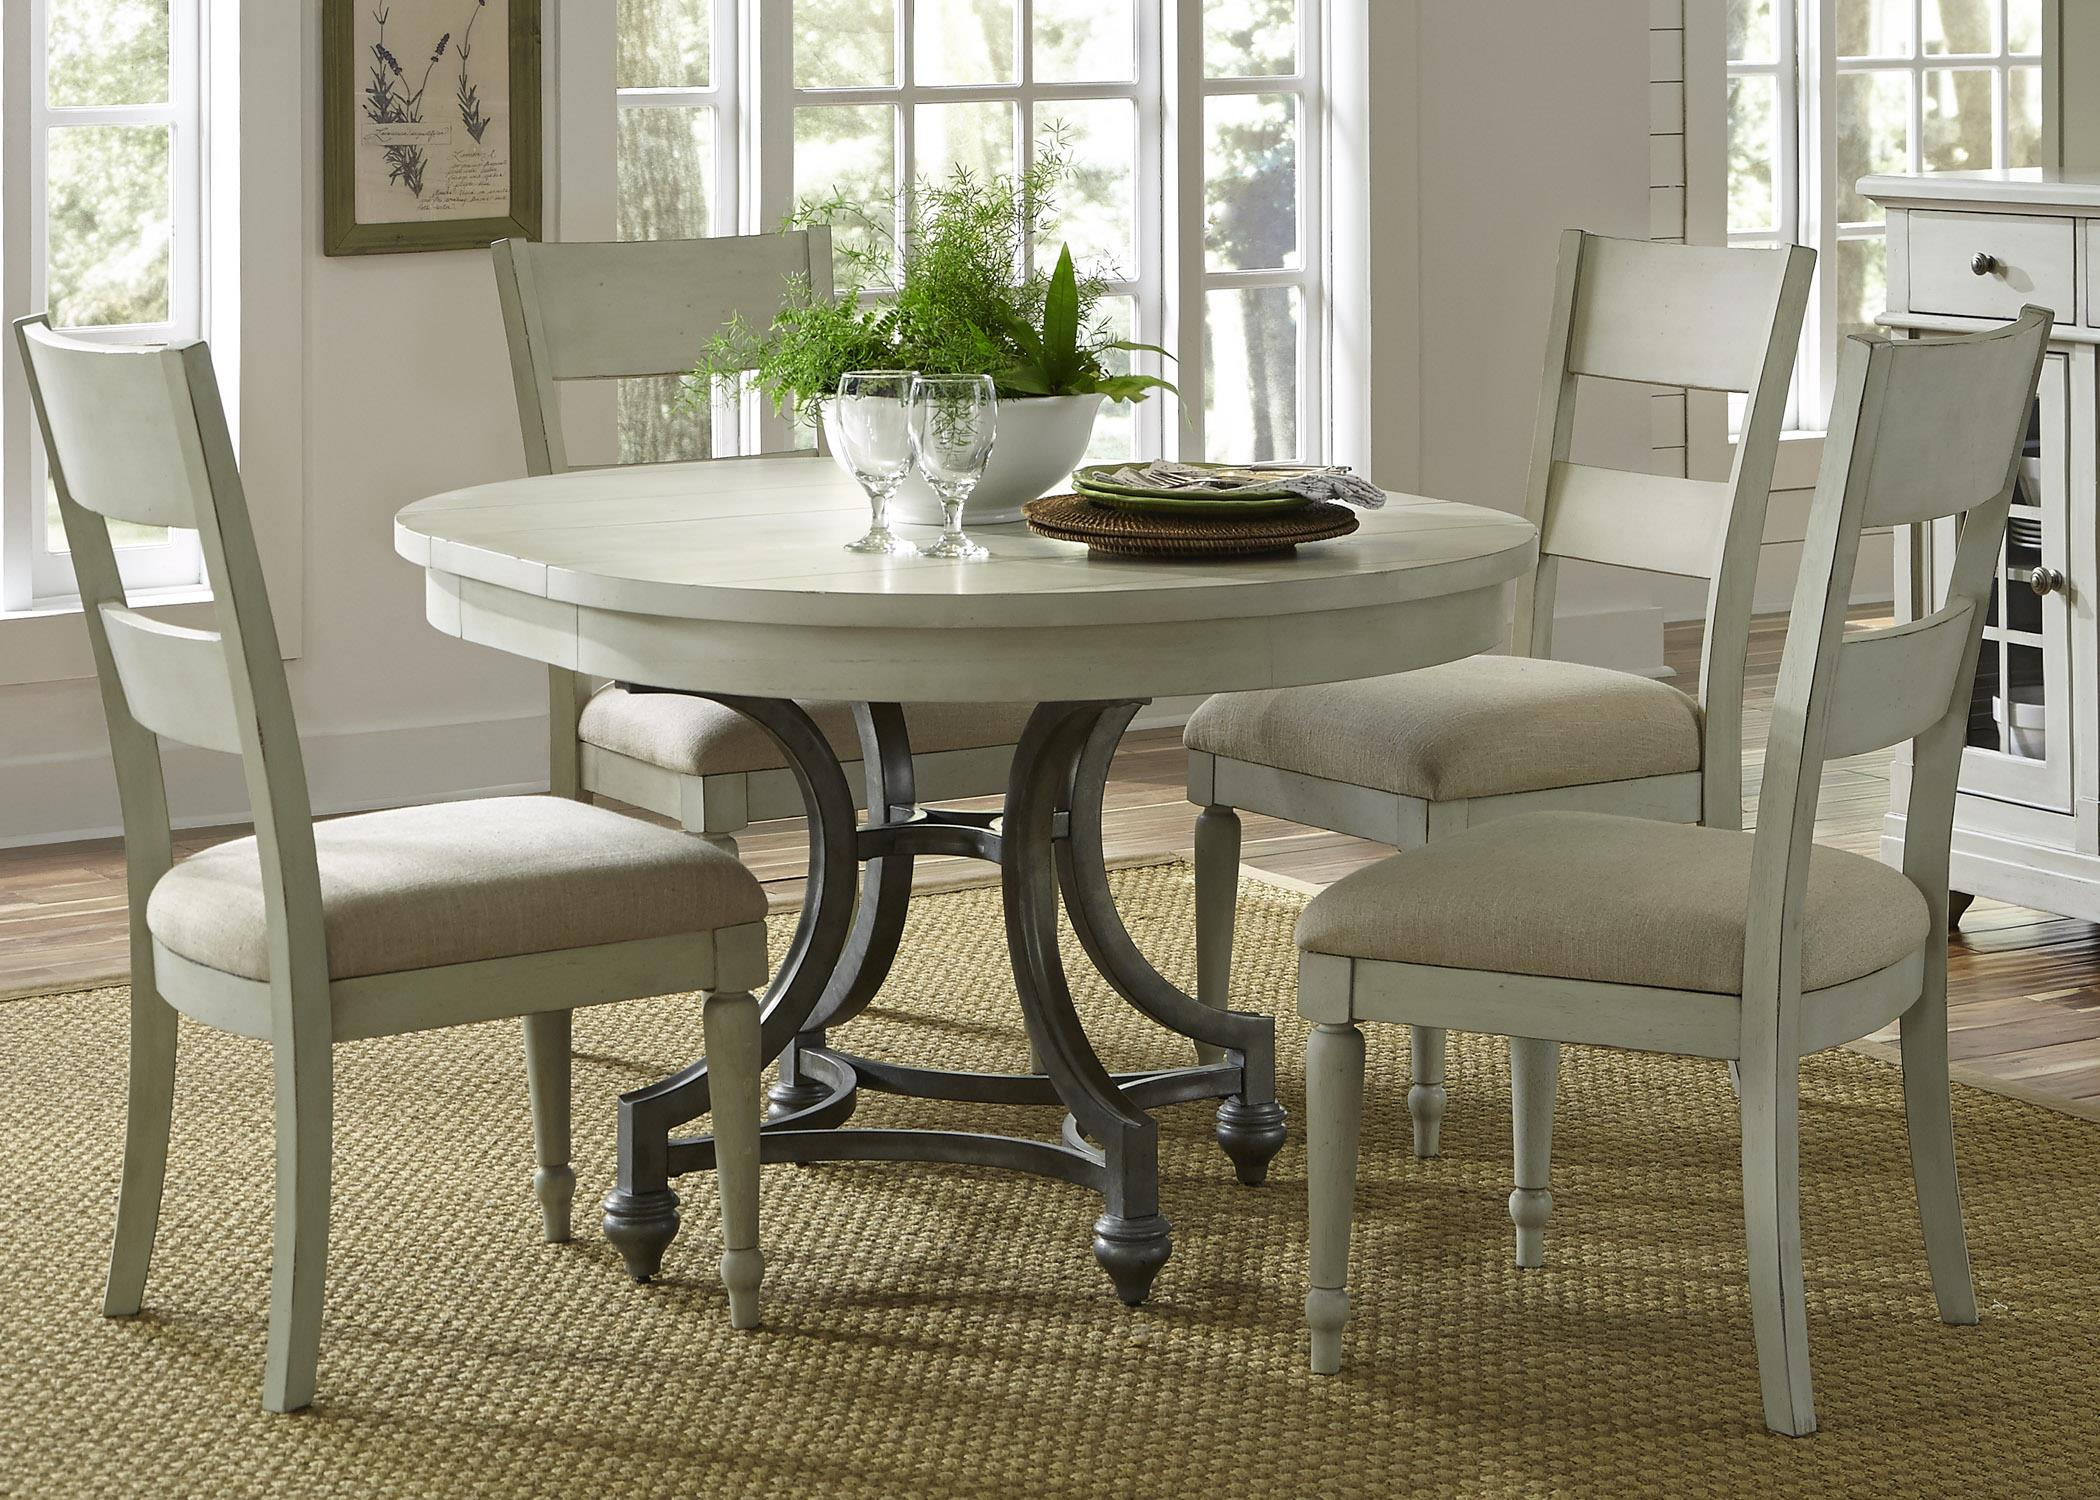 Round Table and Chair Set & Round Table with 4 Slat Back Chairs Set by Liberty Furniture | Wolf ...